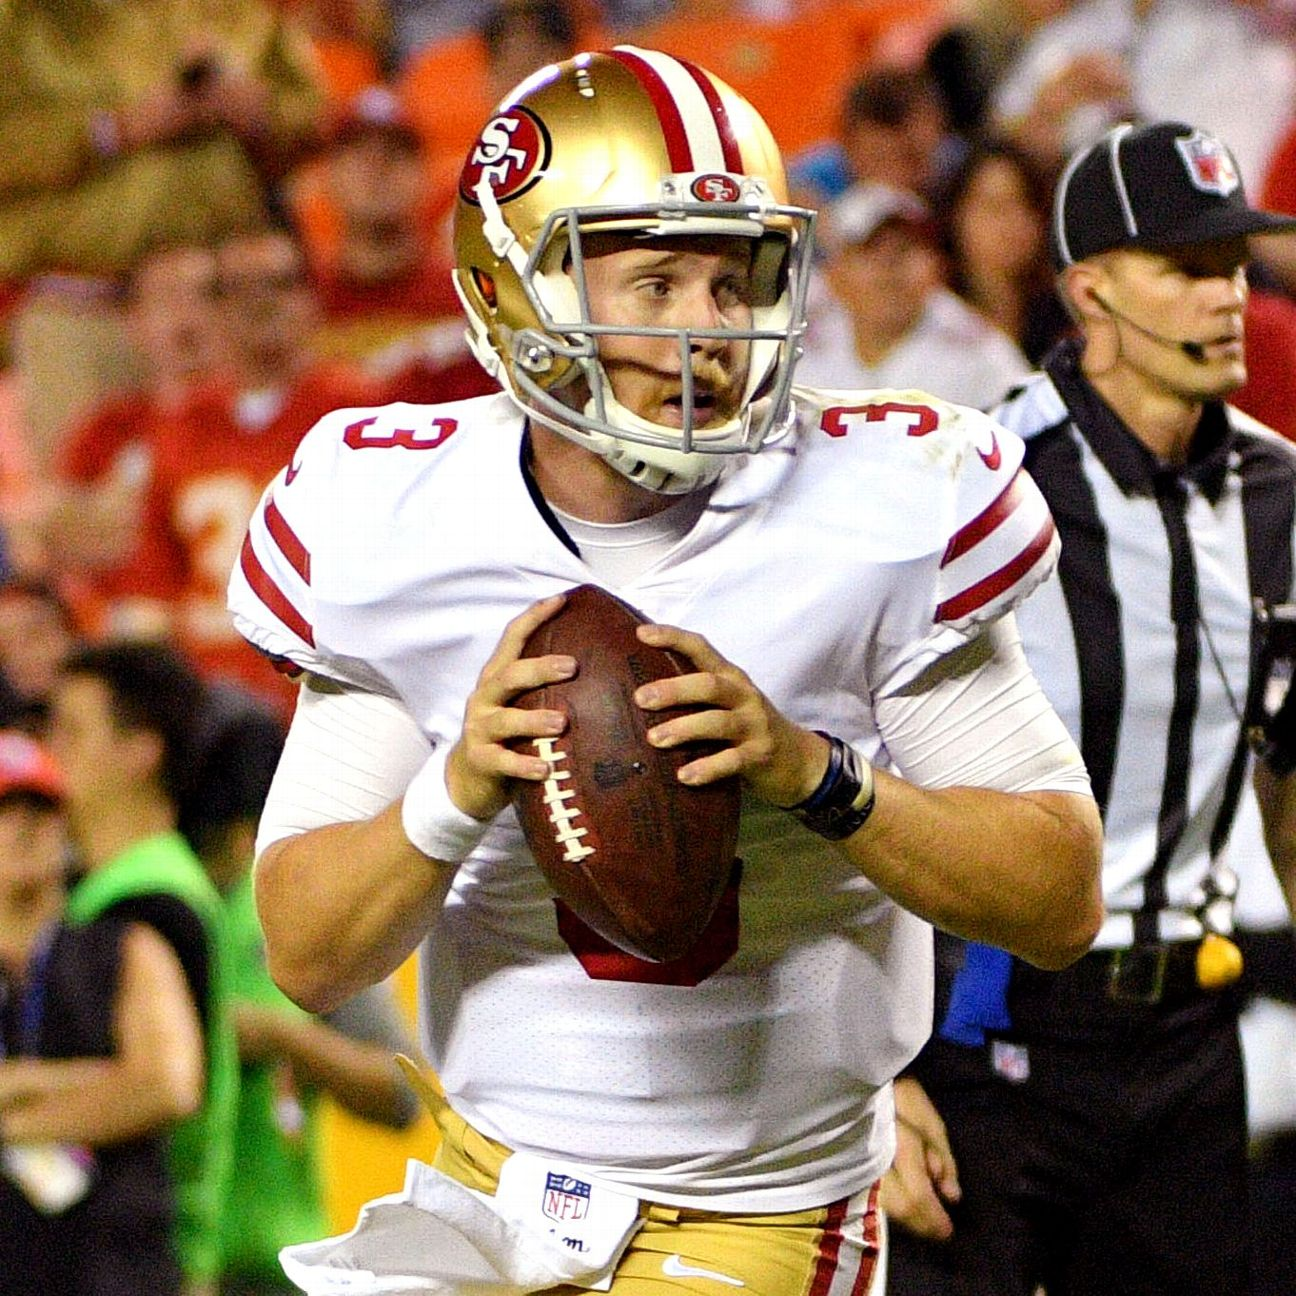 QB C.J. Beathard Set For First Chance With 49ers' Second